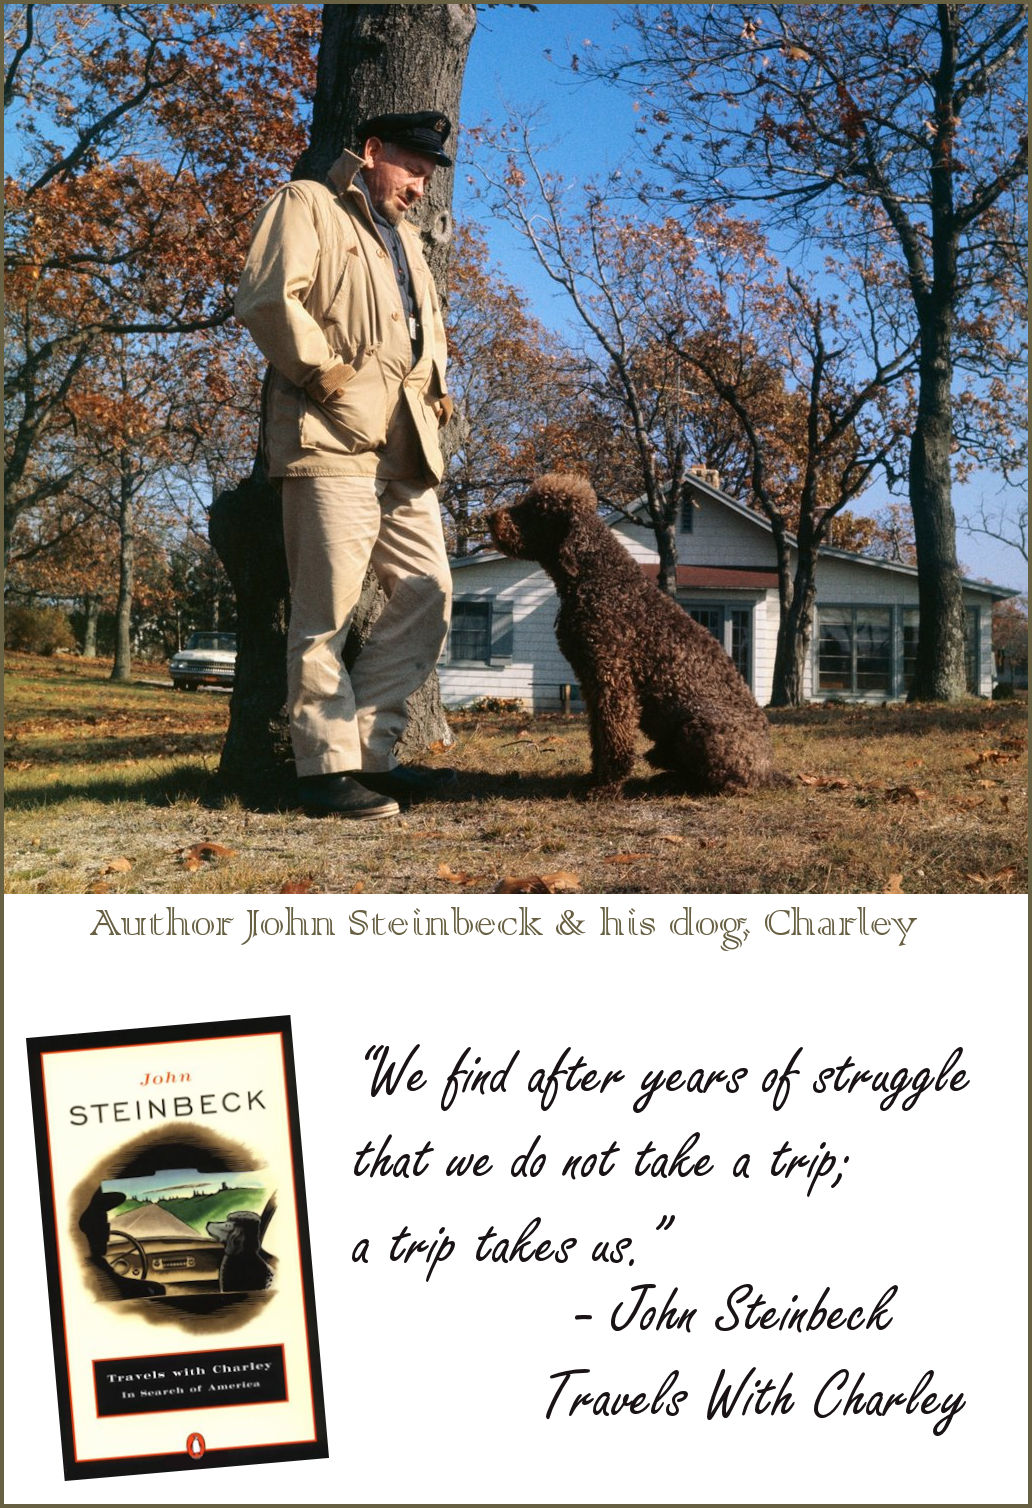 John Steinbeck traveled with his dog, Charley, and wrote about it.